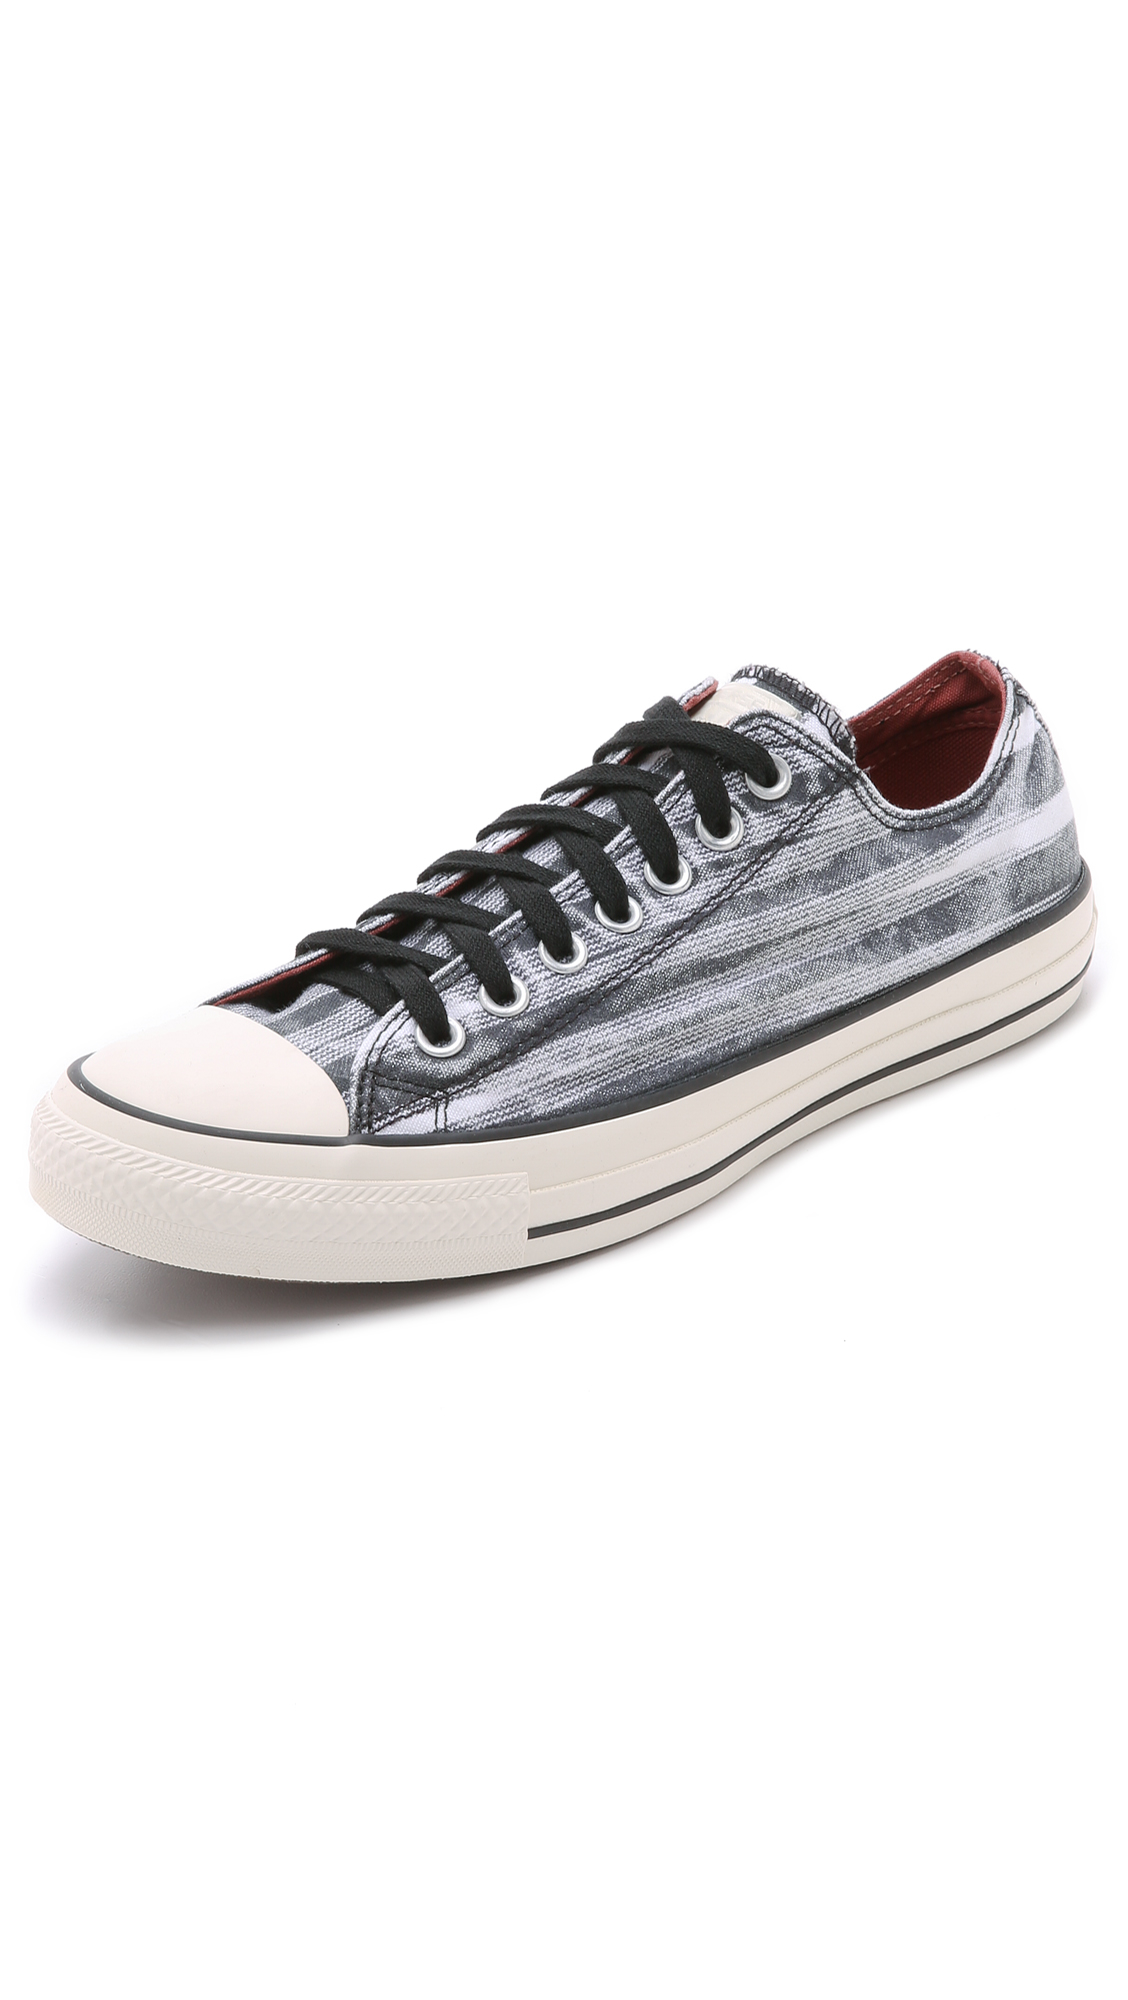 e3869a6c1eac Lyst - Converse X Missoni Chuck Taylor All Star Sneakers in Black ...